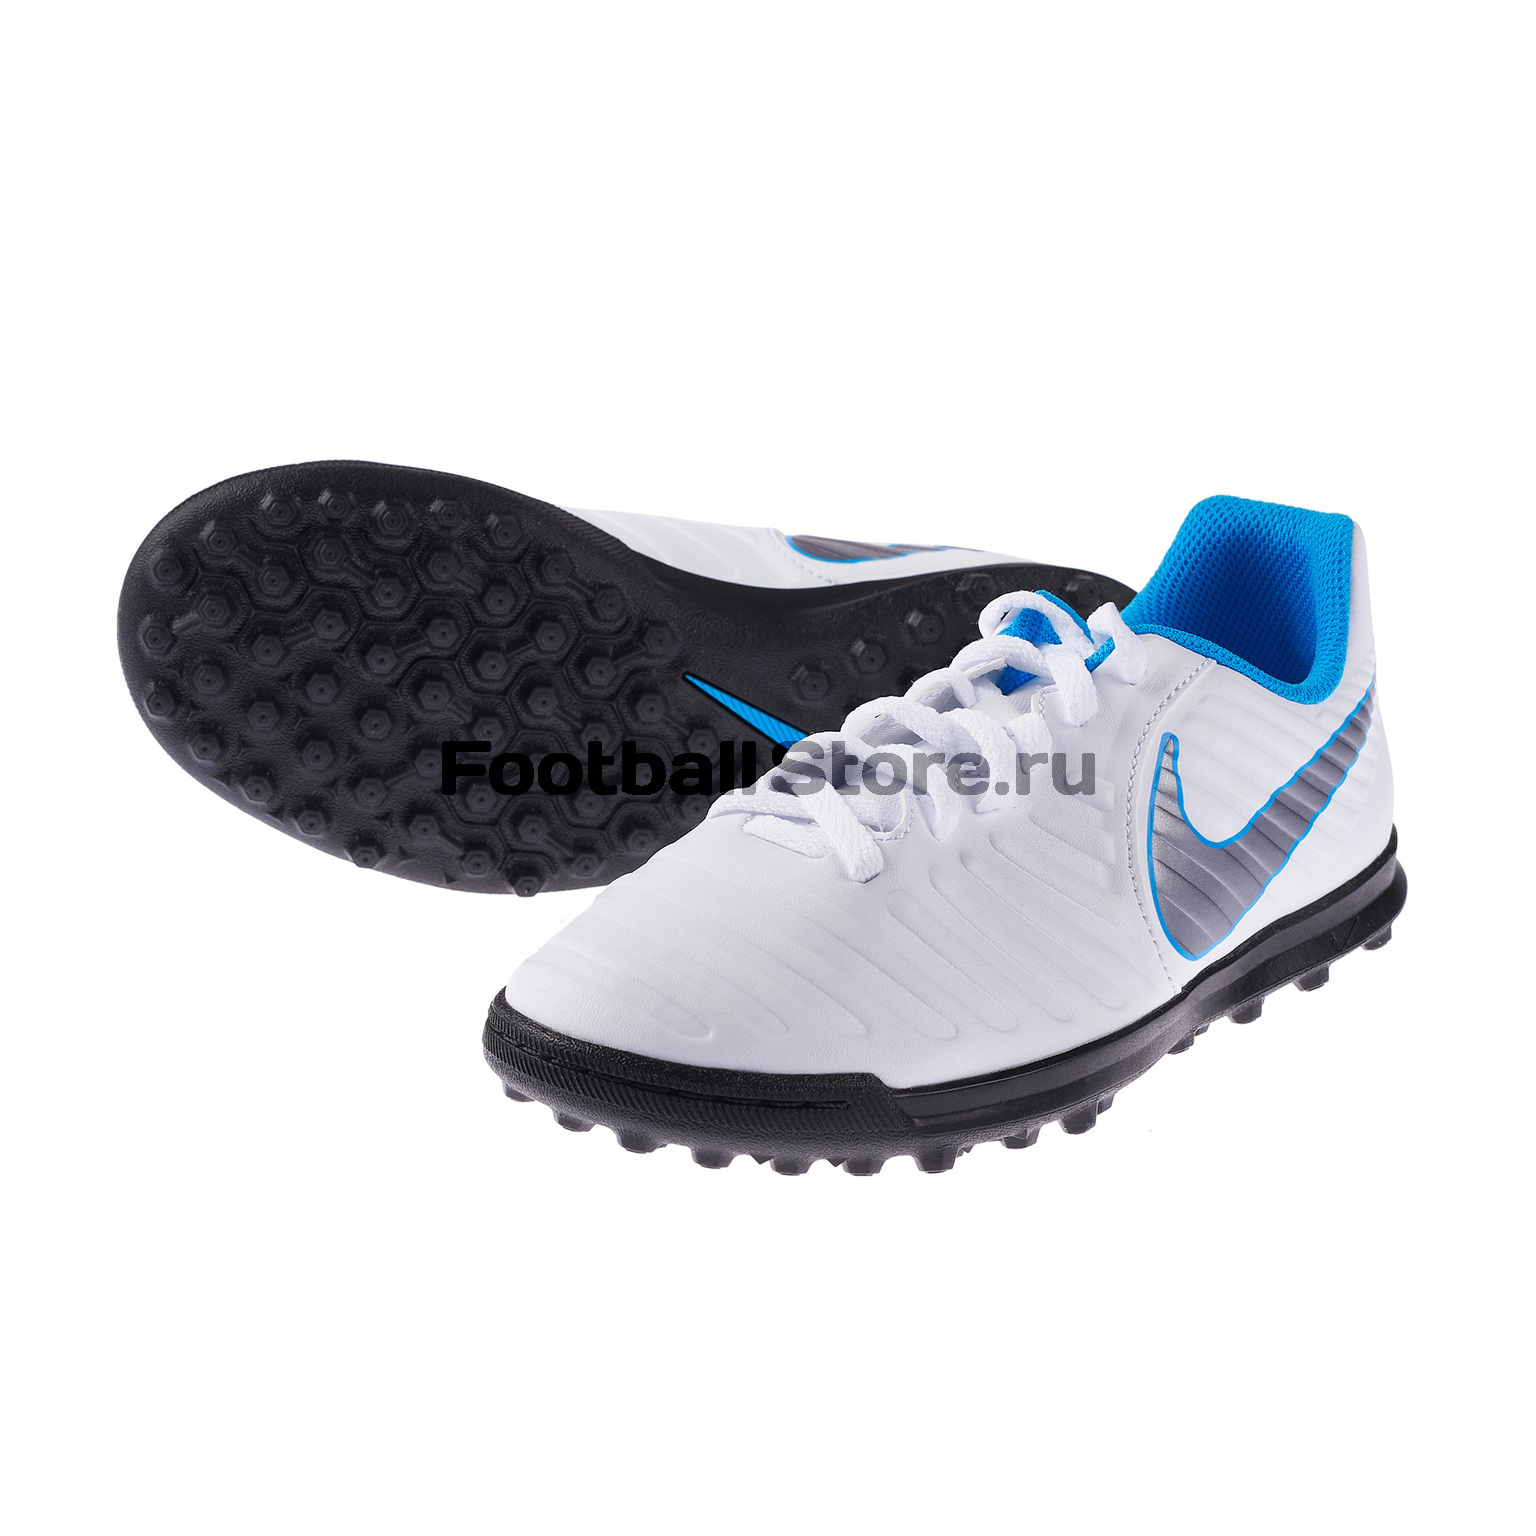 Шиповки детские Nike Legend 7 Club TF AH7261-107 бутсы nike шиповки nike jr tiempox legend vi tf 819191 018